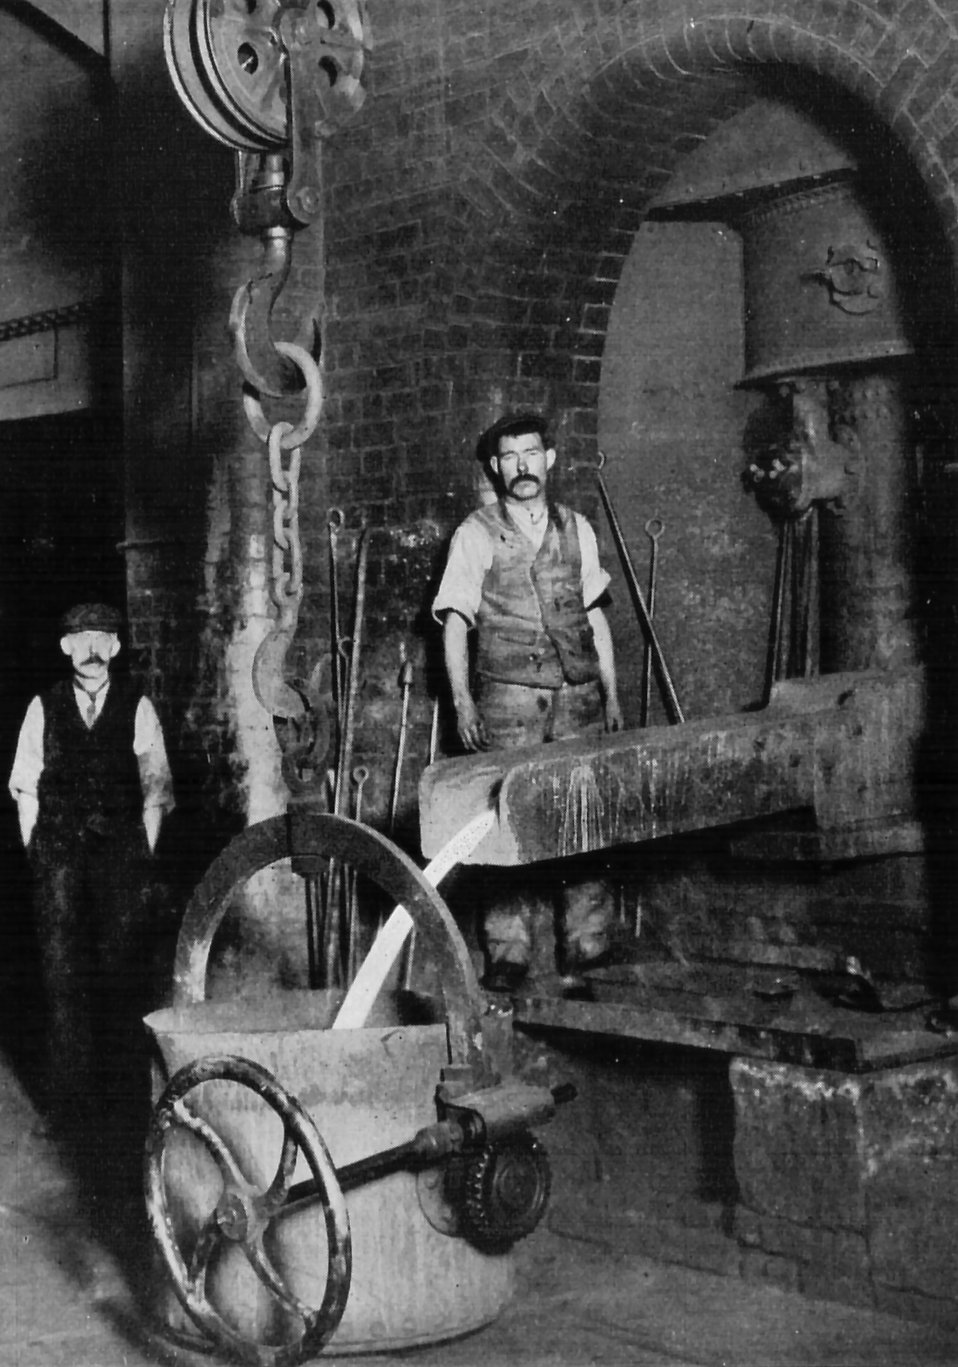 Two men working in an iron foundry : Free Stock Photo